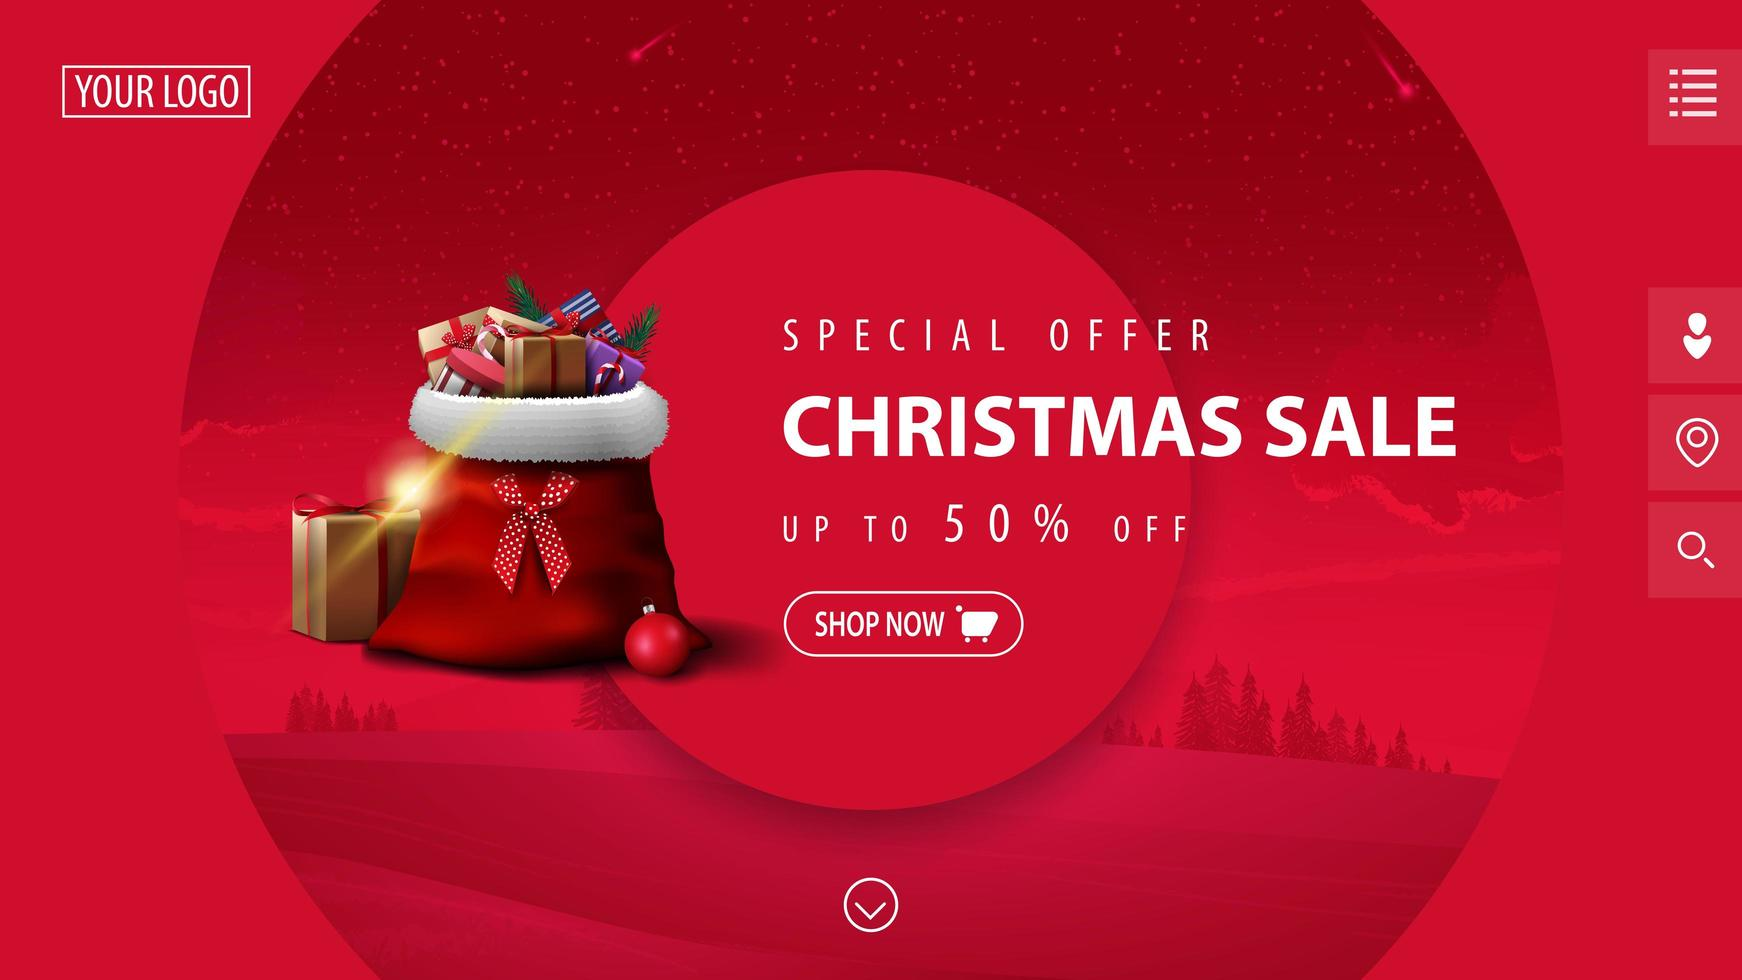 Special offer, Christmas sale, up to 50 off, beautiful pink modern discount banner with big decorative circles, winter landscape on background and Santa Claus bag with presents vector